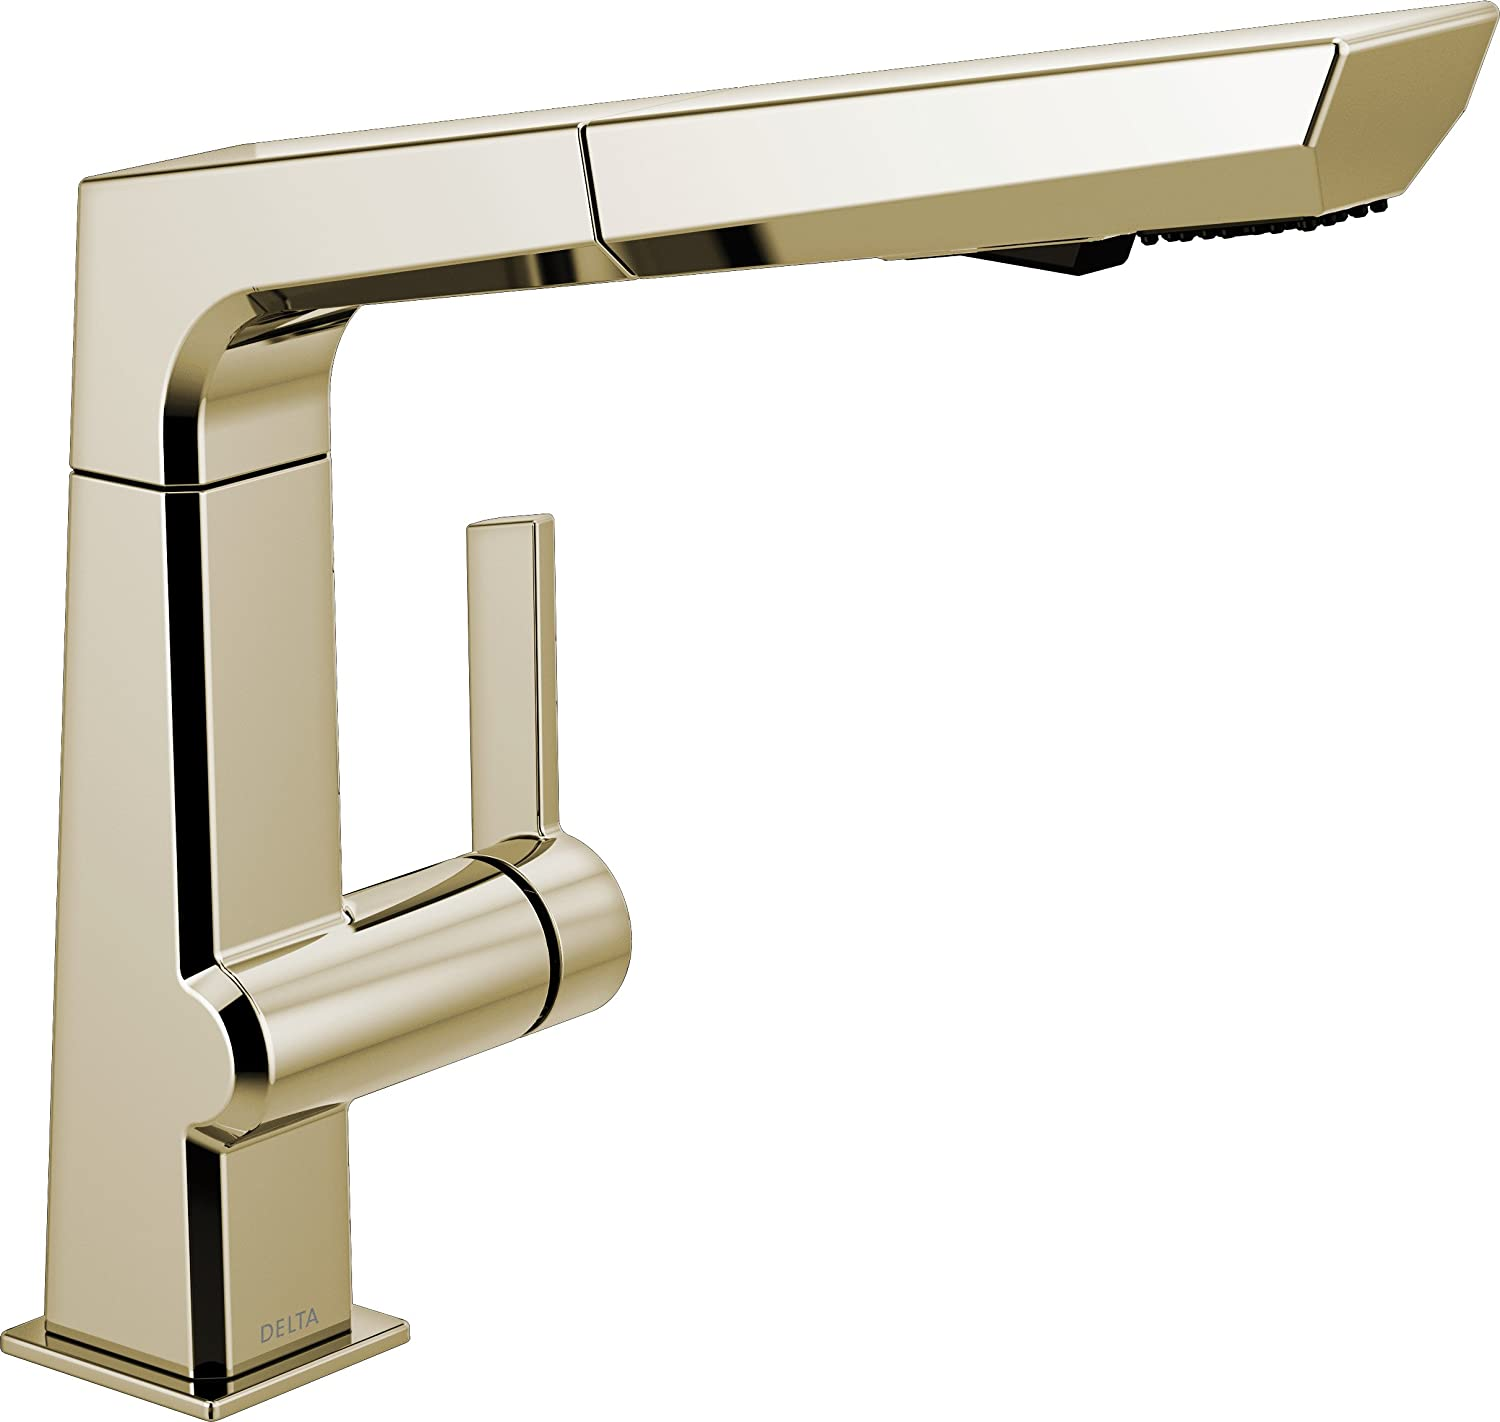 Arctic Stainless 4193-AR-DST Delta Faucet Pivotal Single-Handle Kitchen Sink Faucet with Pull Out Sprayer